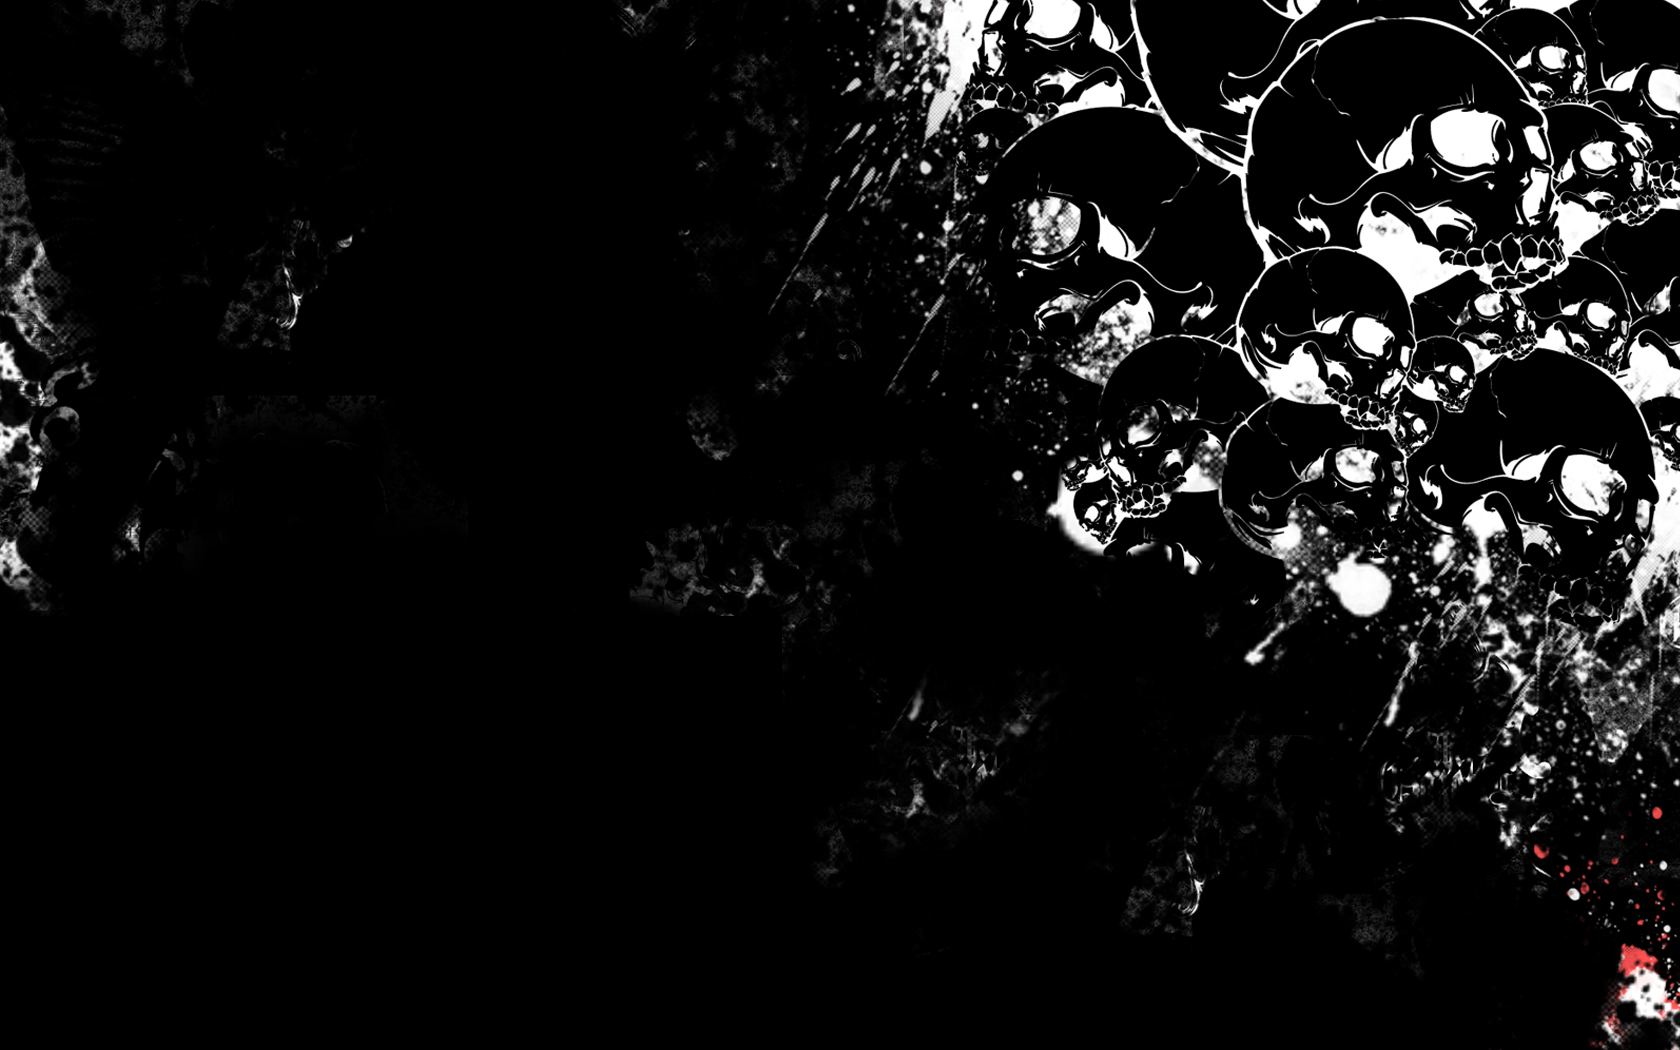 Skull Computer Wallpapers Desktop Backgrounds 1680x1050 ID53716 1680x1050